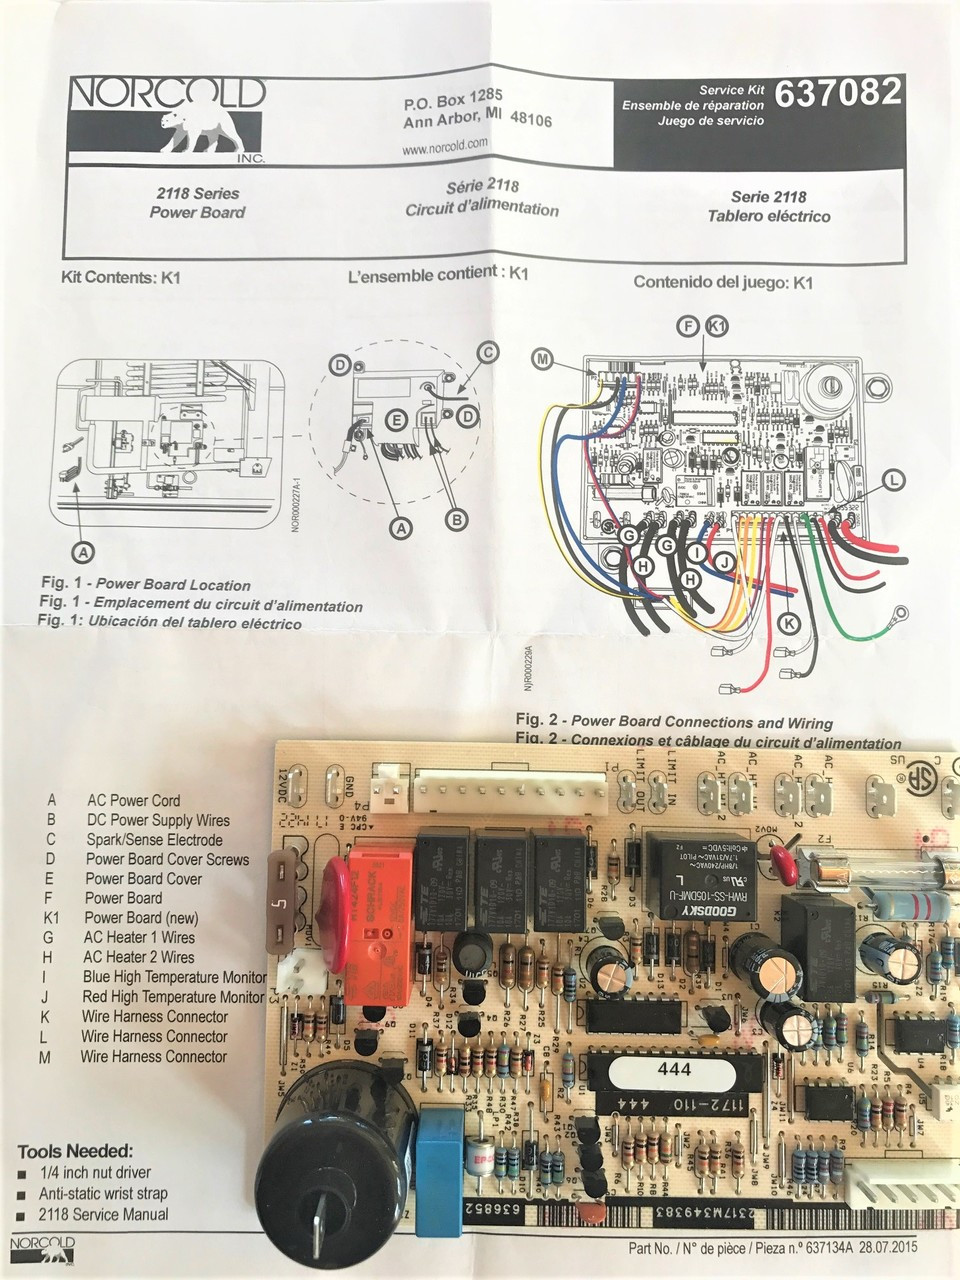 Norcold Wiring Diagram 22 Images Diagrams Refrigerator Schematic Img 0059 2 66296150427922312801280c2 Model N621 Rv